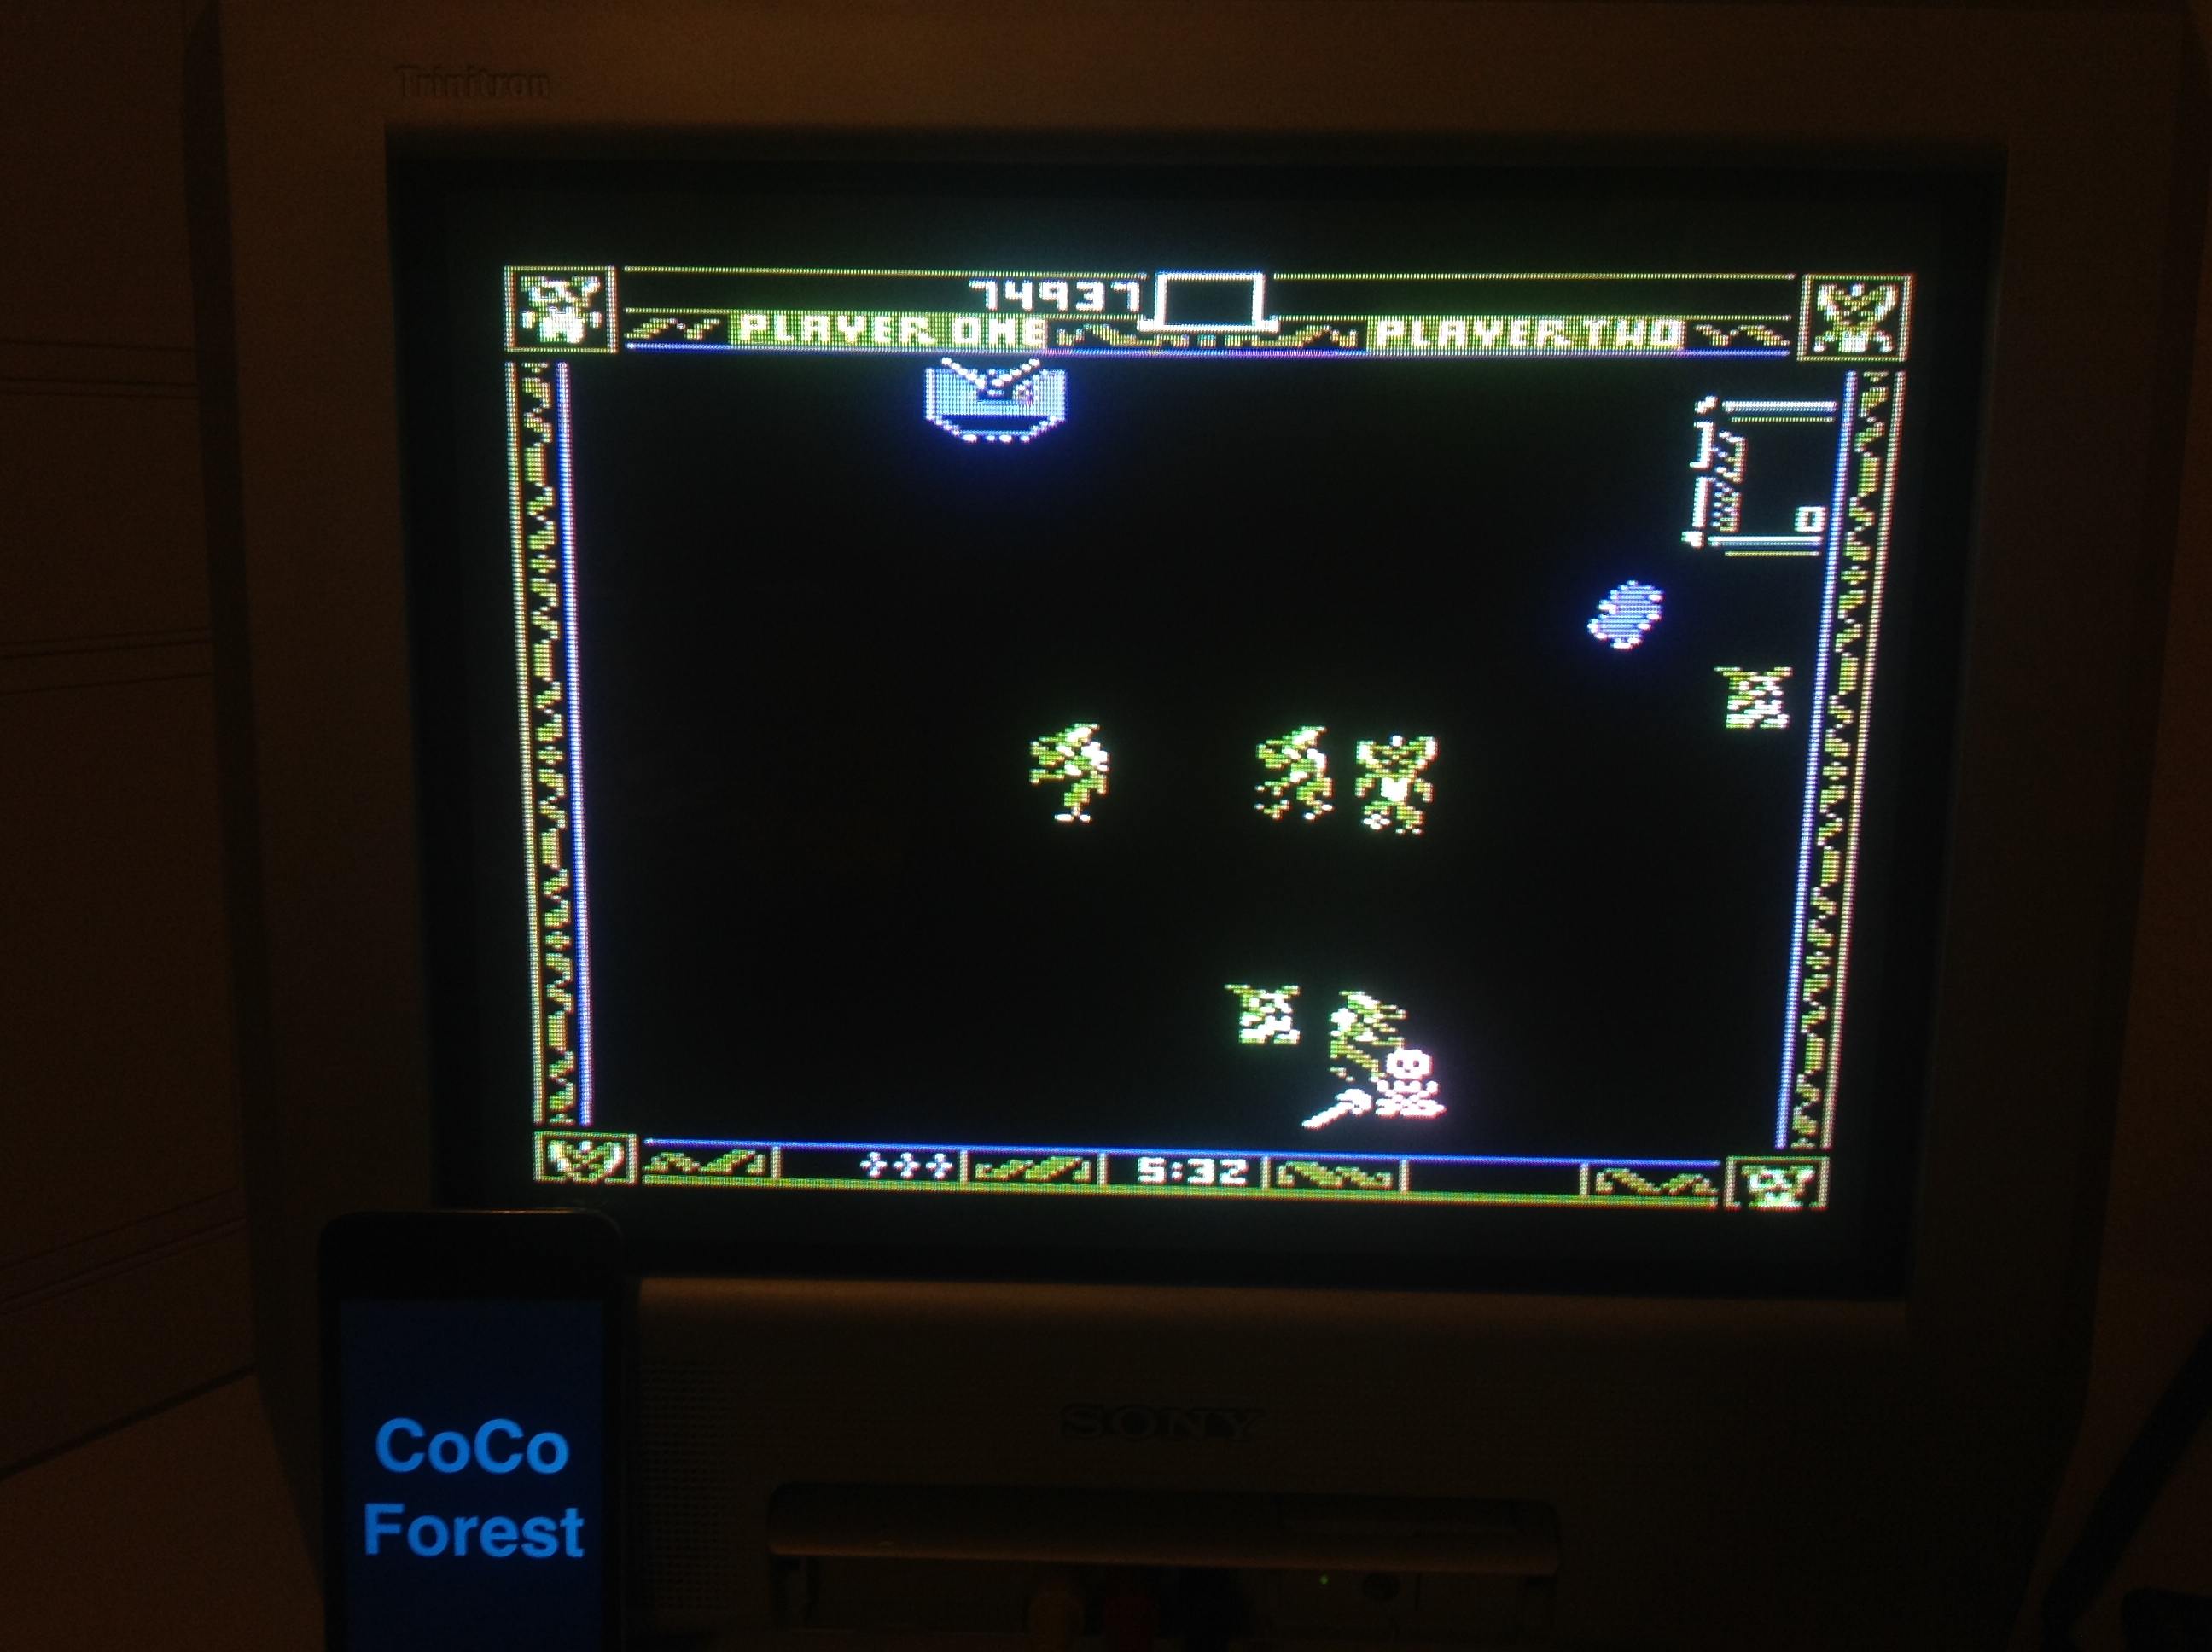 CoCoForest: Gremlins (Atari 5200) 74,937 points on 2015-11-08 11:44:18